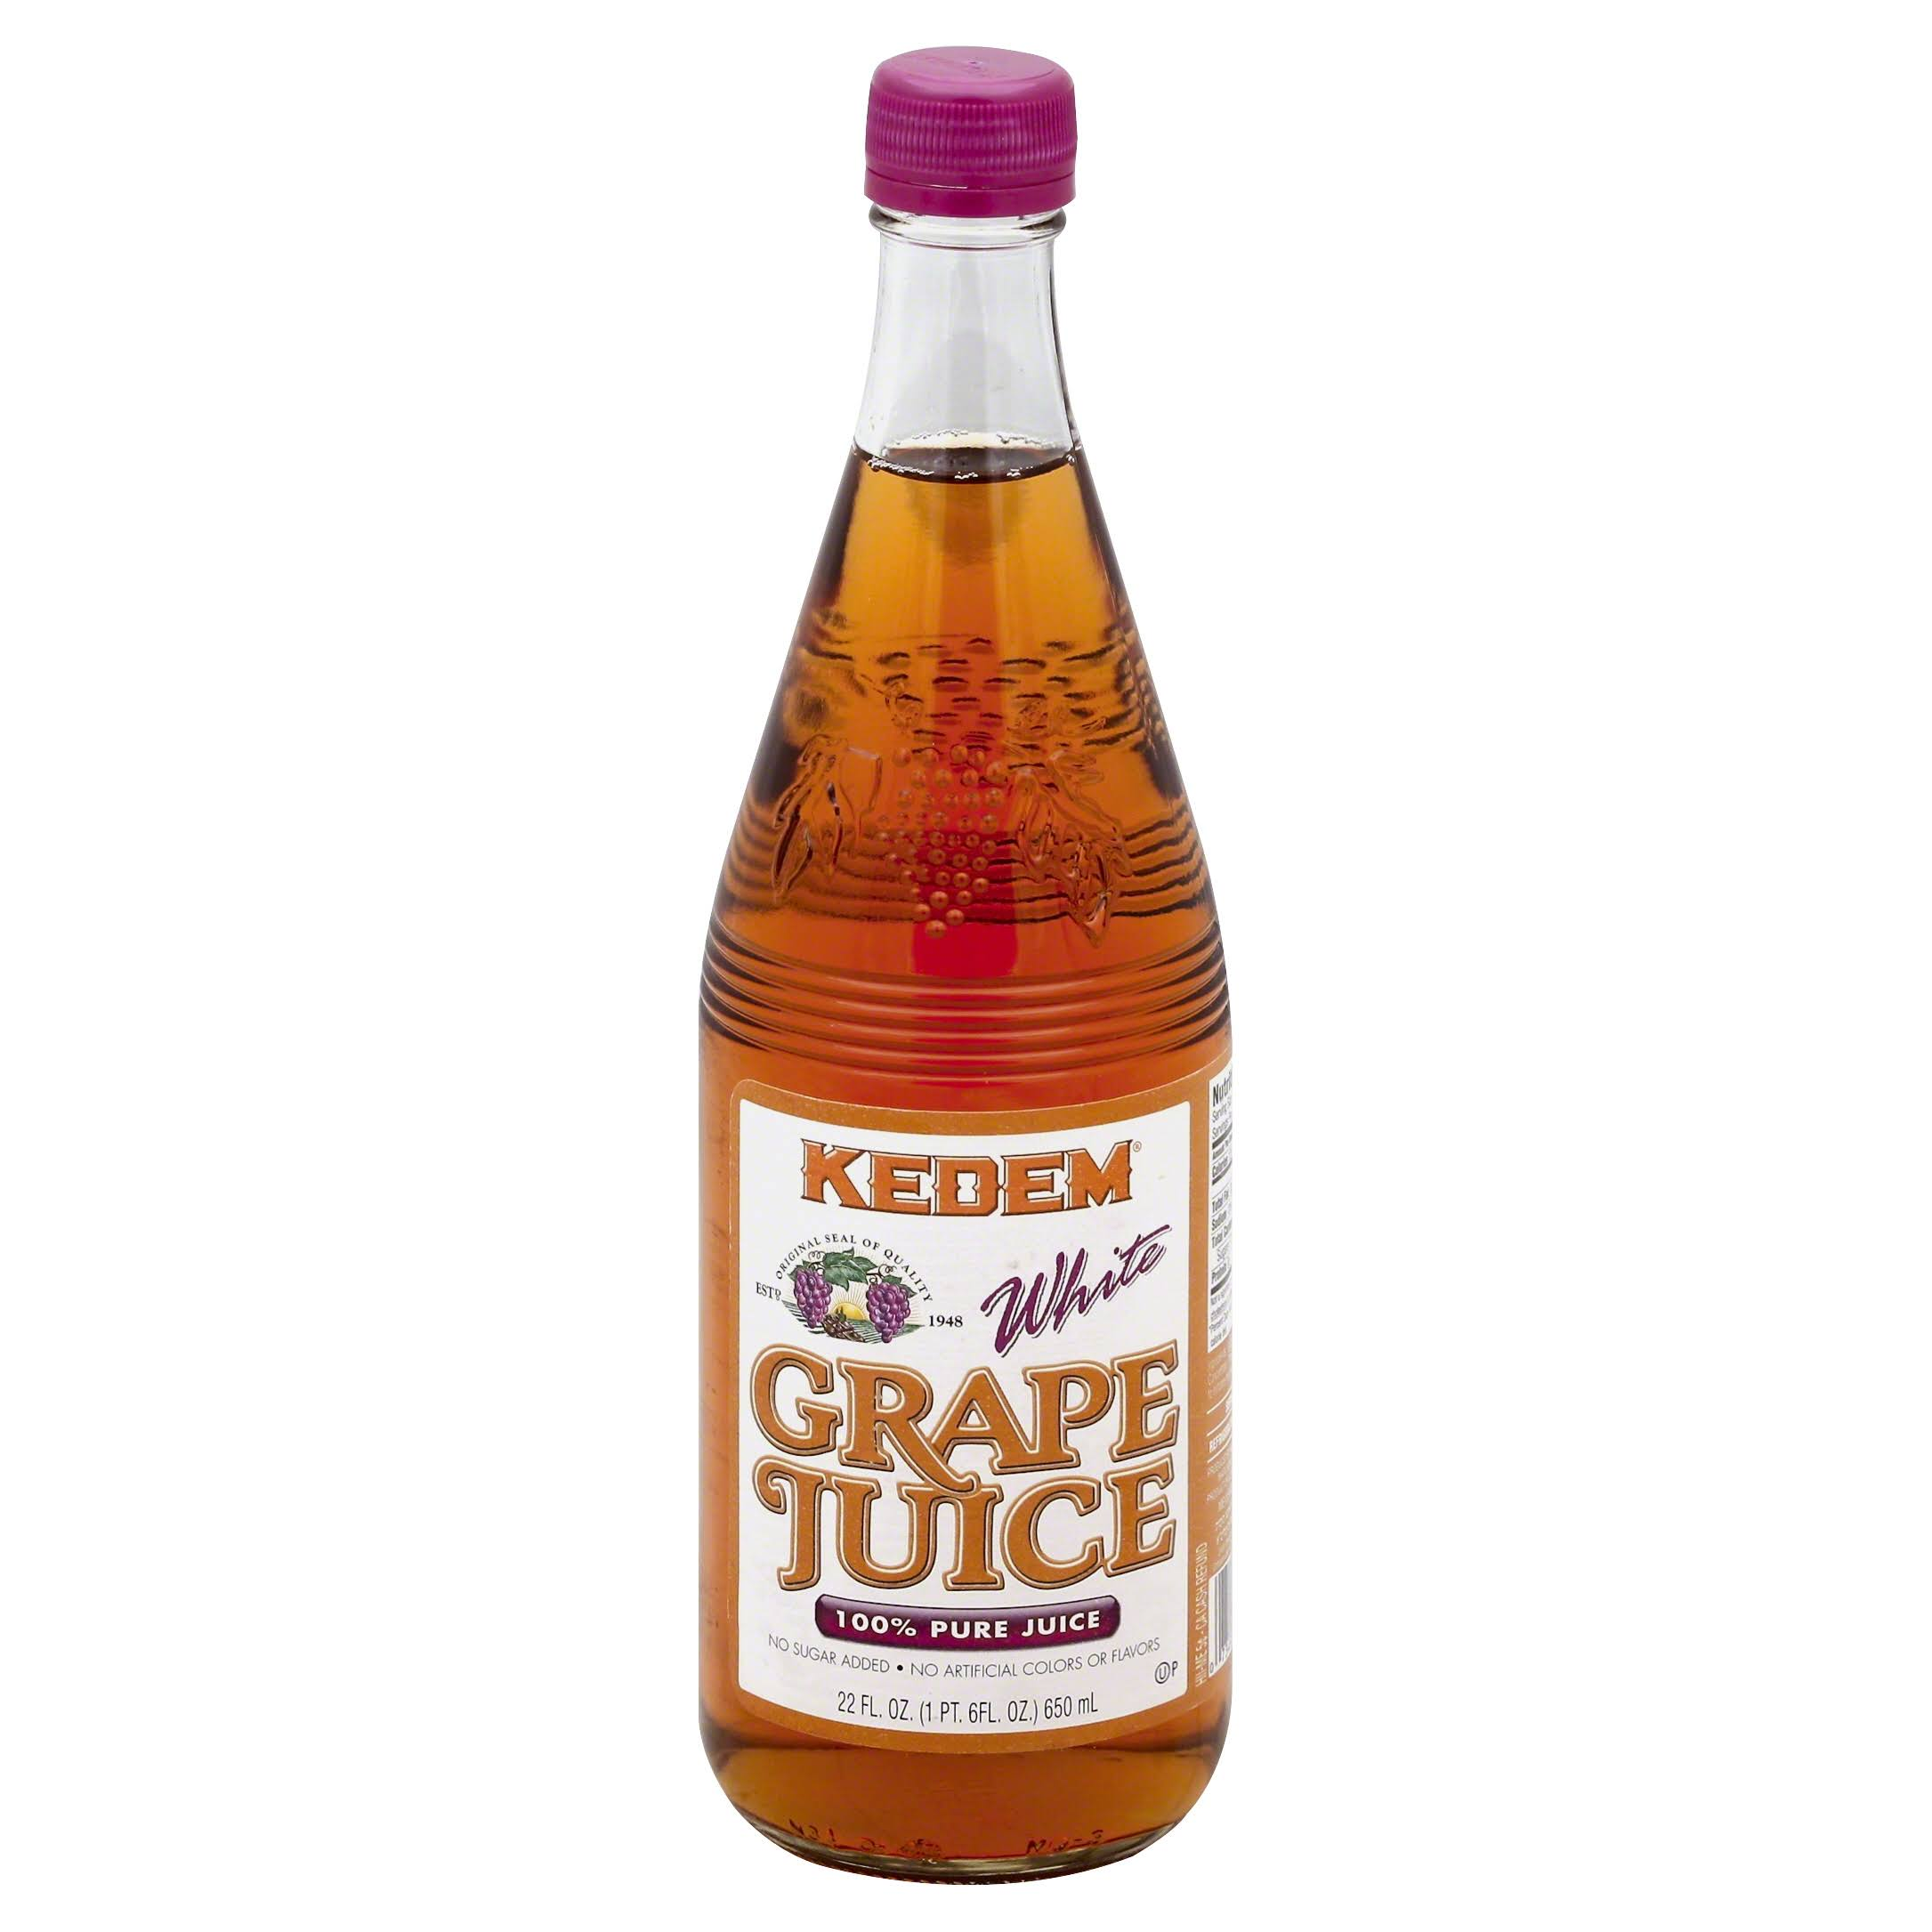 Kedem White Pure Juice - Grape, 22oz